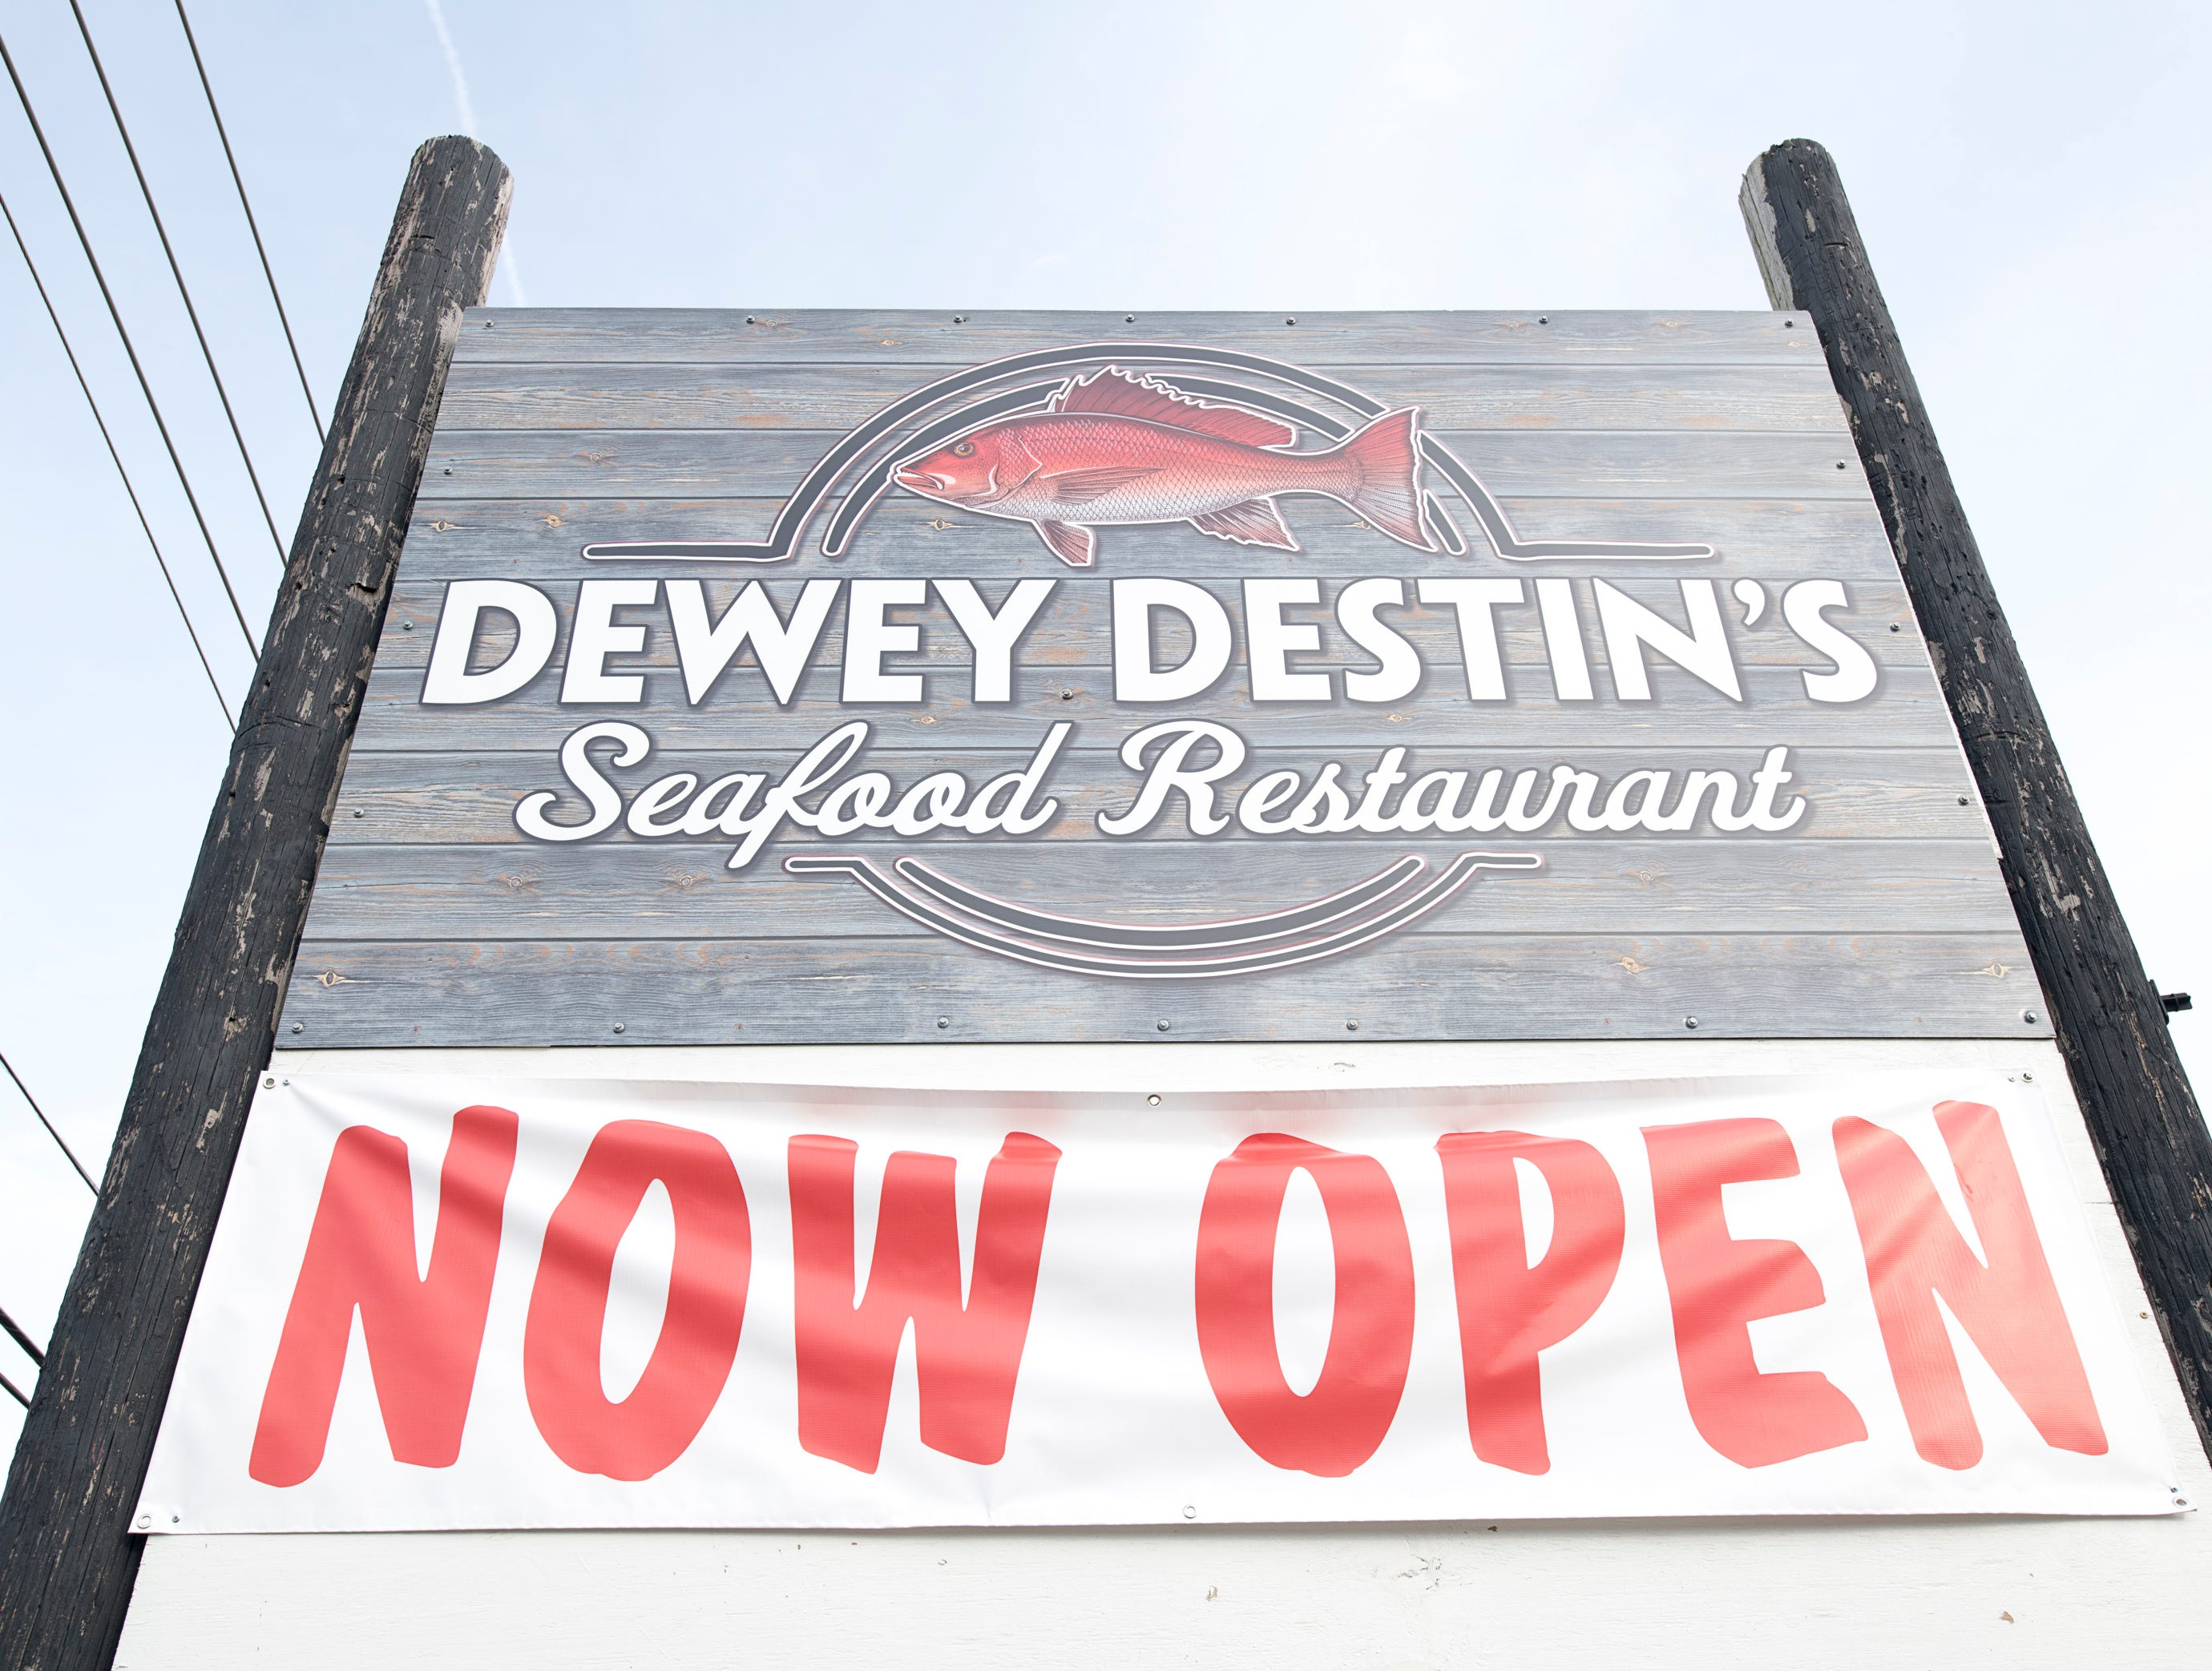 The sign lets the public know that the new Dewey Destin Seafood Restaurant is now open in Navarre on Thursday, November 29, 2018.